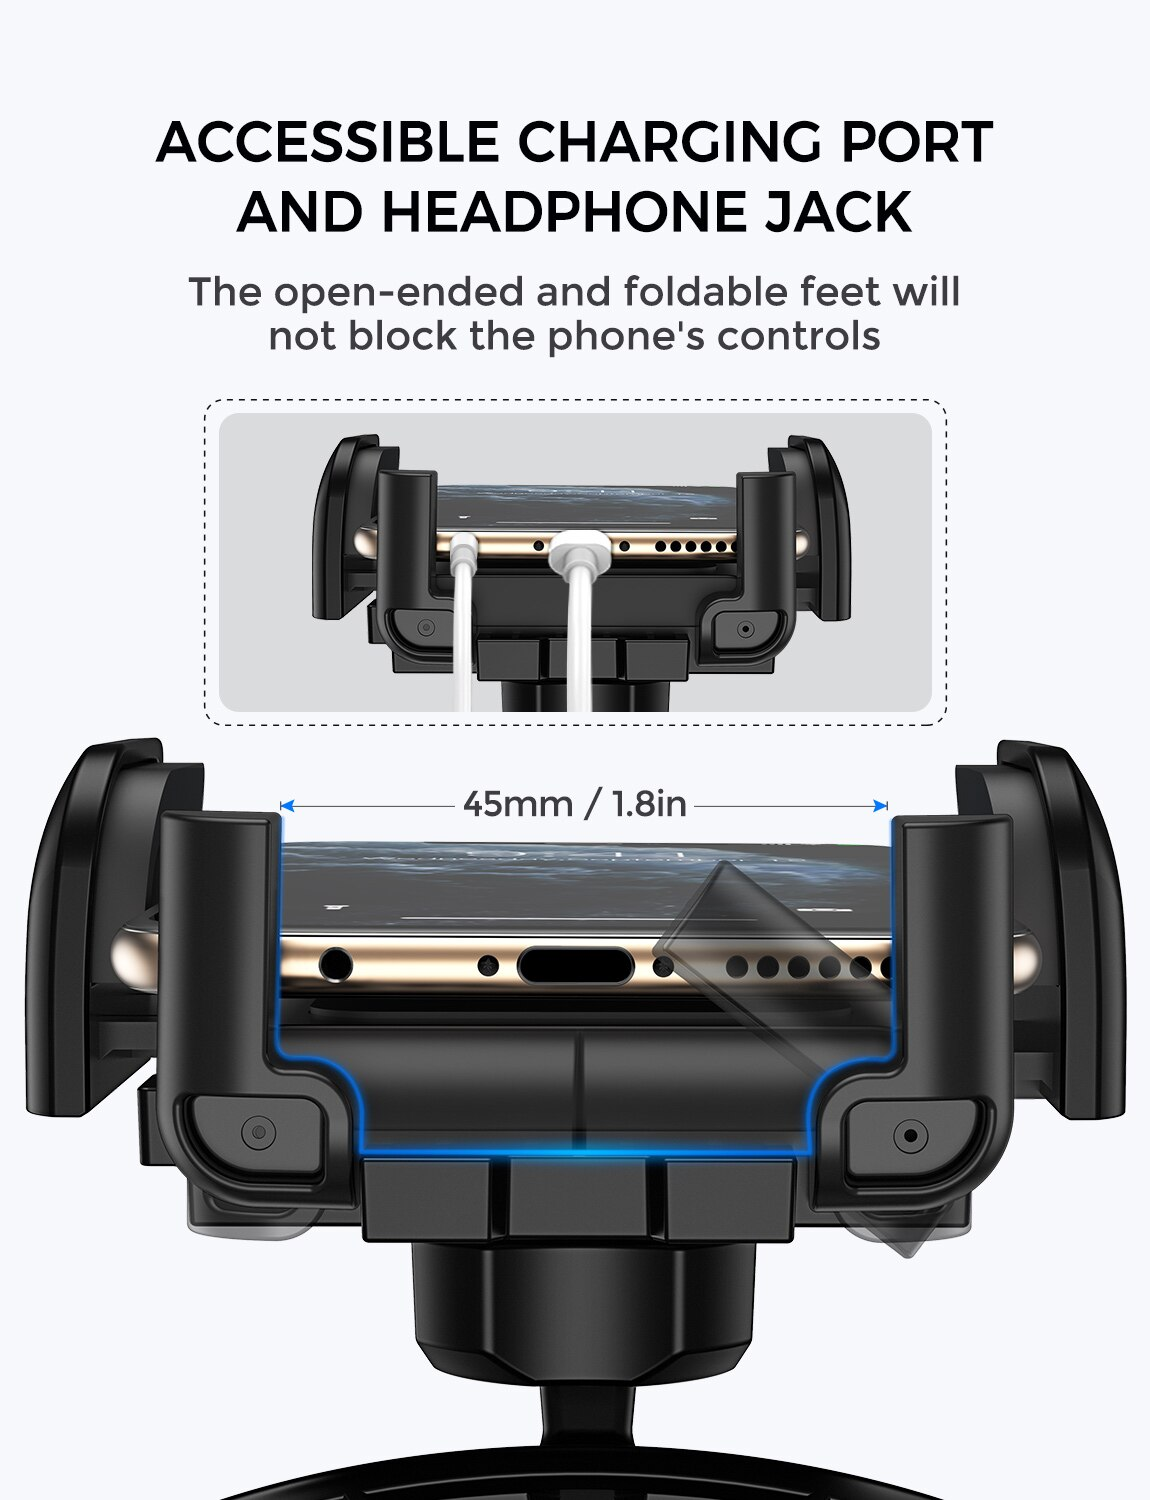 H0805b93ba8274babb1bf4e1489b9d0acX - Mpow 051 Car Phone Holder CD Slot Car Phone Mount with Three-Side Grip and One-Touch Design for iPhone 12/12Mini/12Pro/12Pro Max